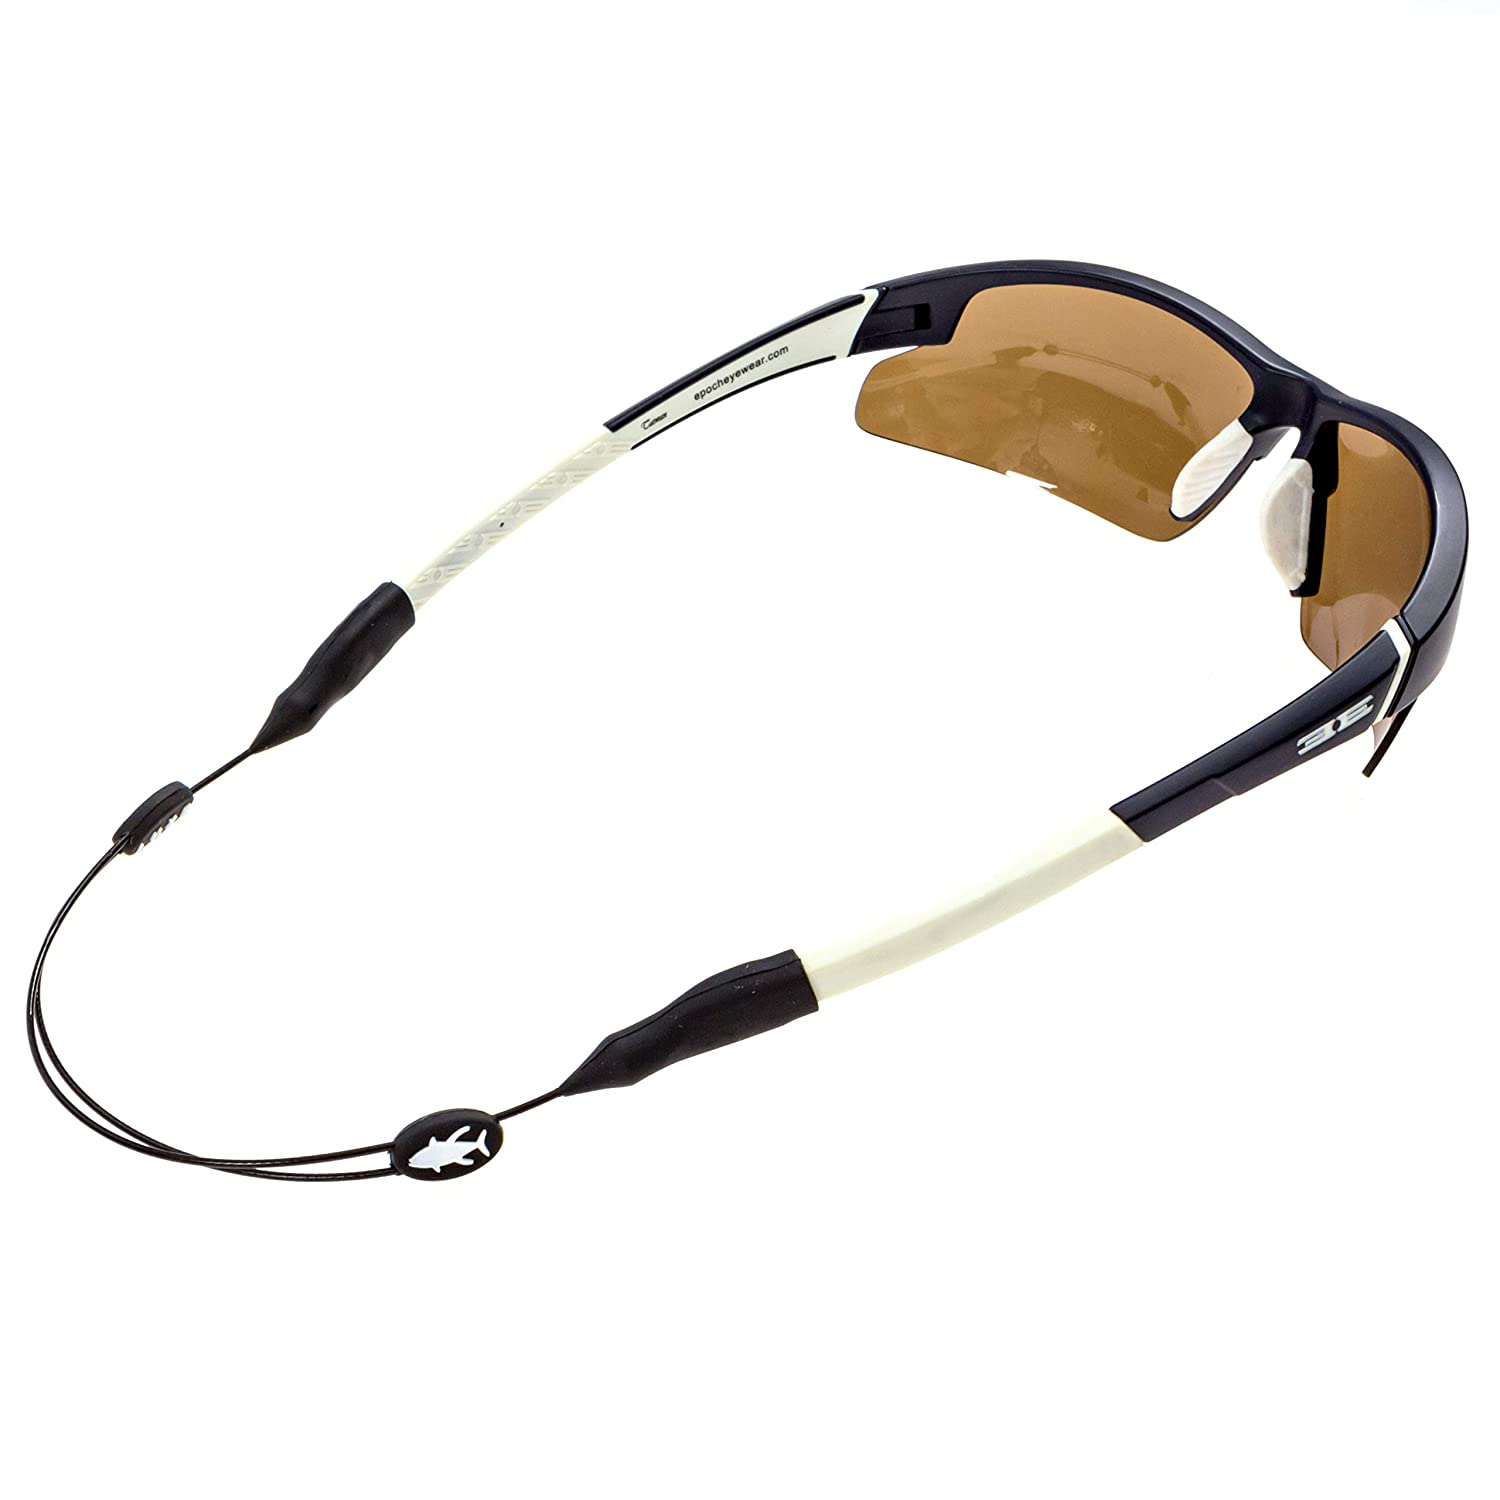 38fd113f168 Luxe Performance Cable Strap - Premium Adjustable No Tail Sunglass Strap    Eyewear Retainer for your Sunglasses